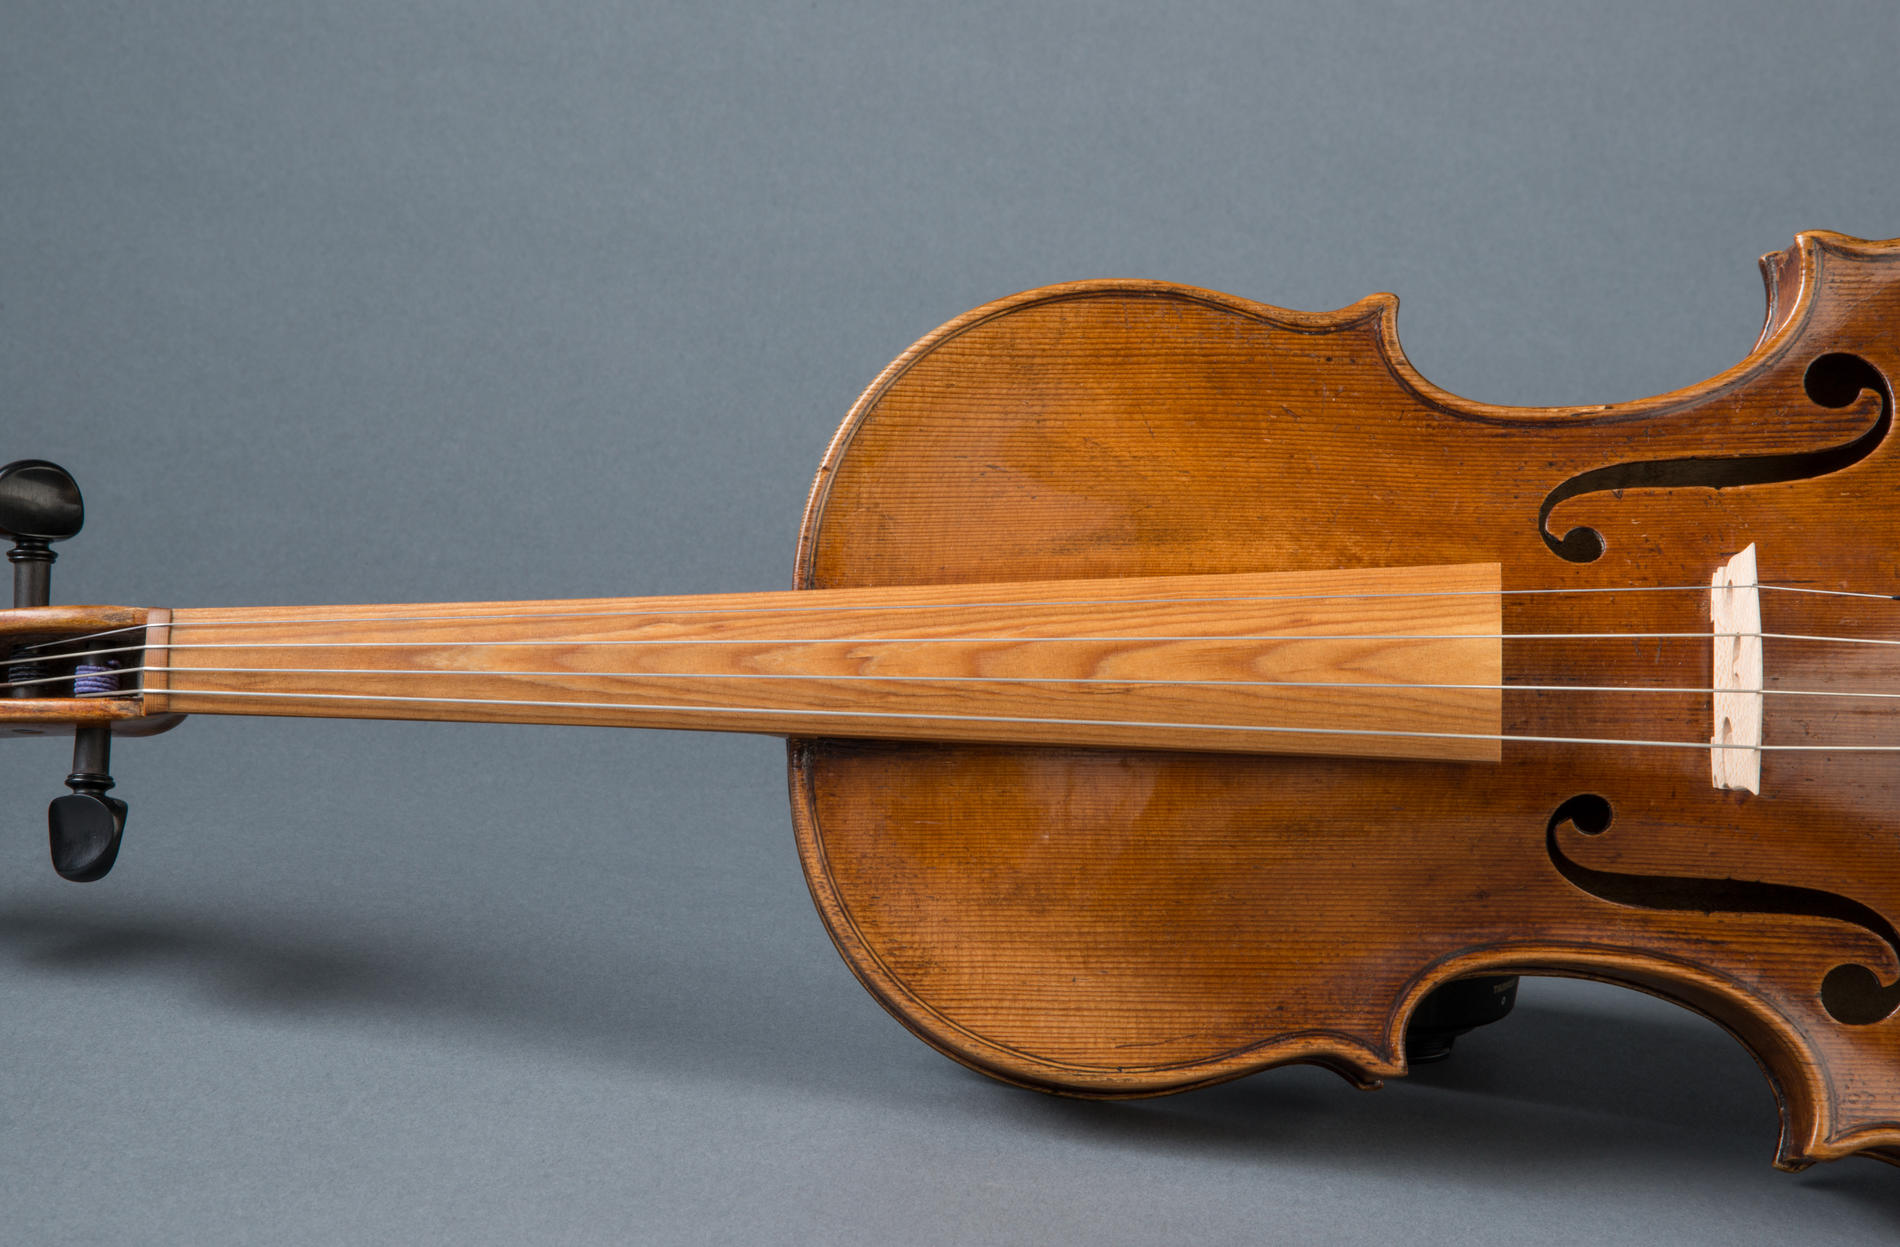 Violin with fingerboard from Sonowood spruce.